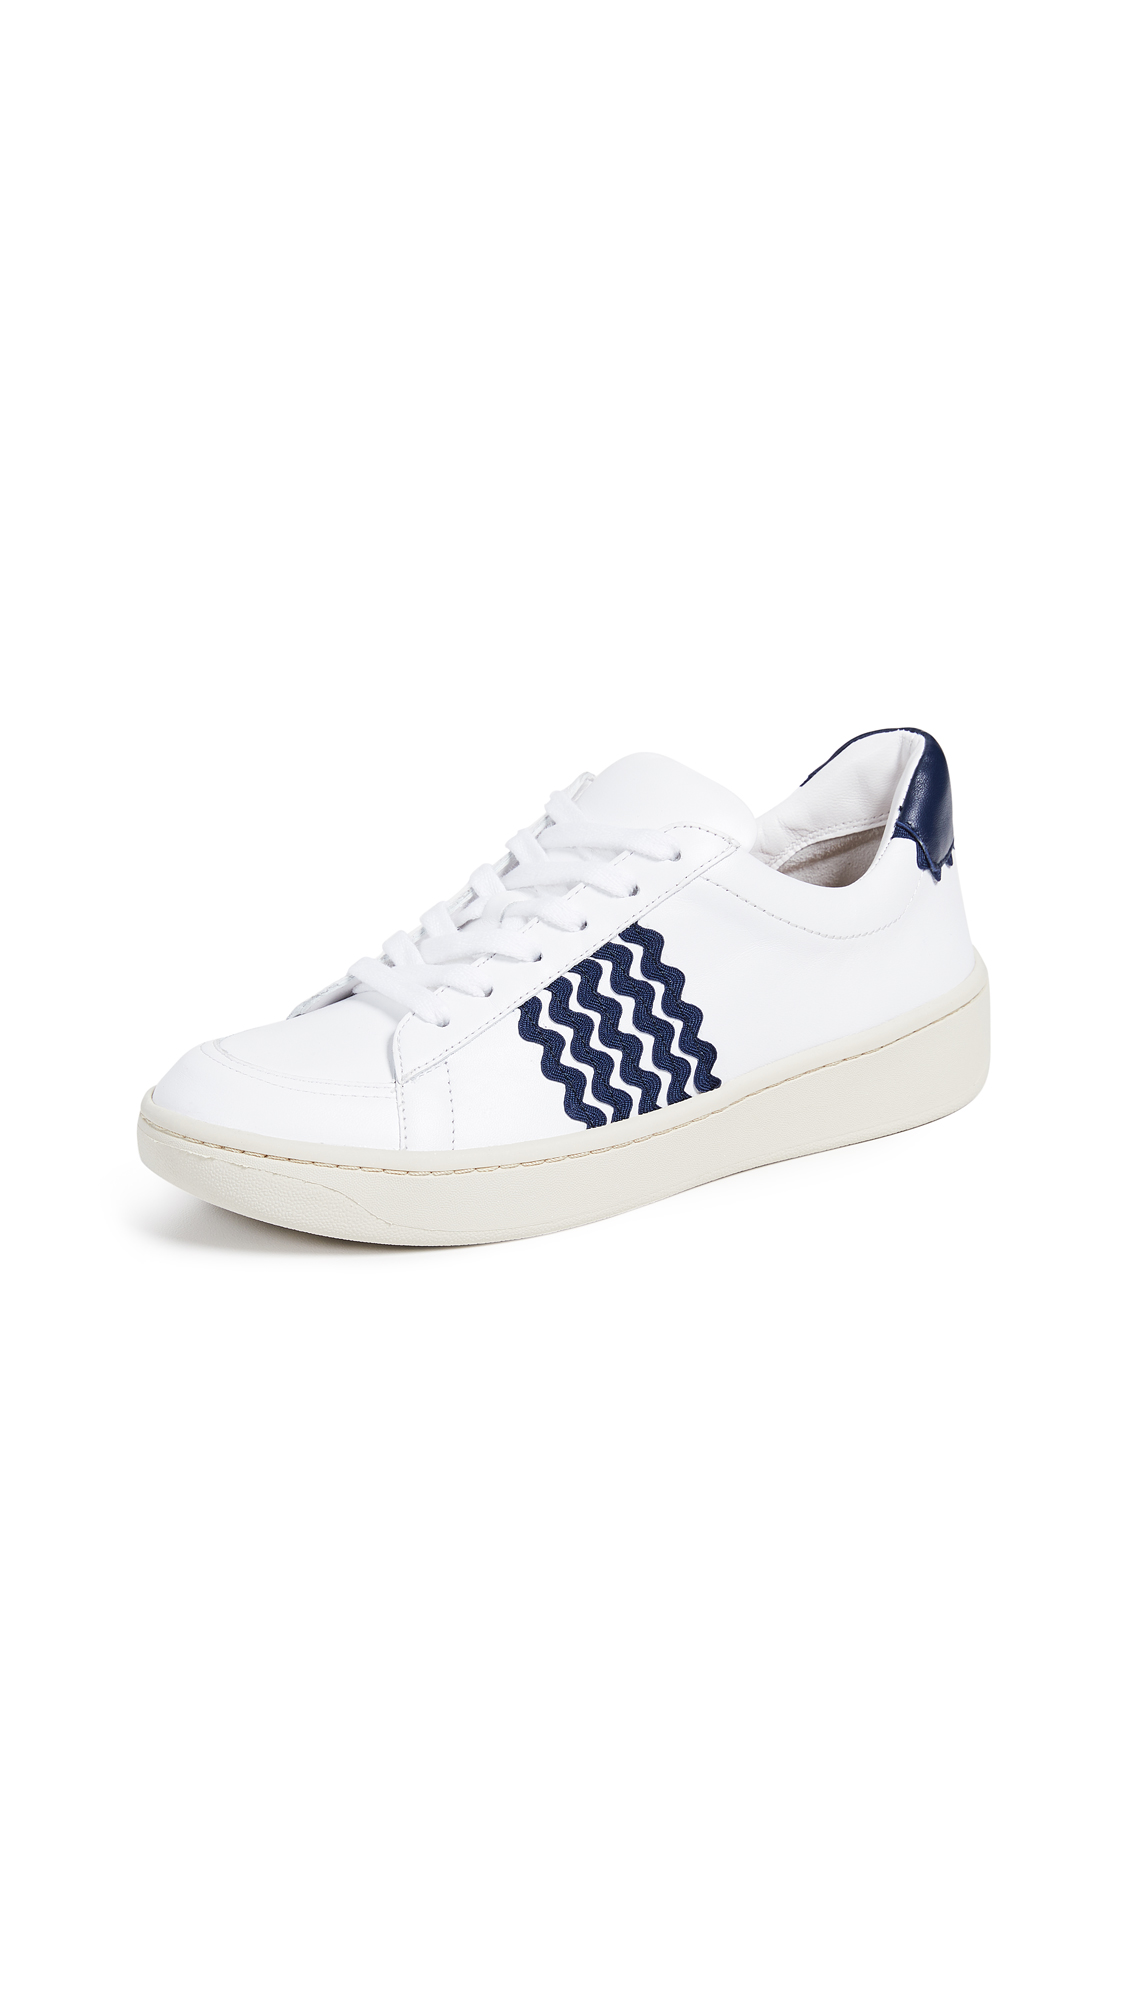 Loeffler Randall Elliot Sneakers - White/Eclipse Stripe